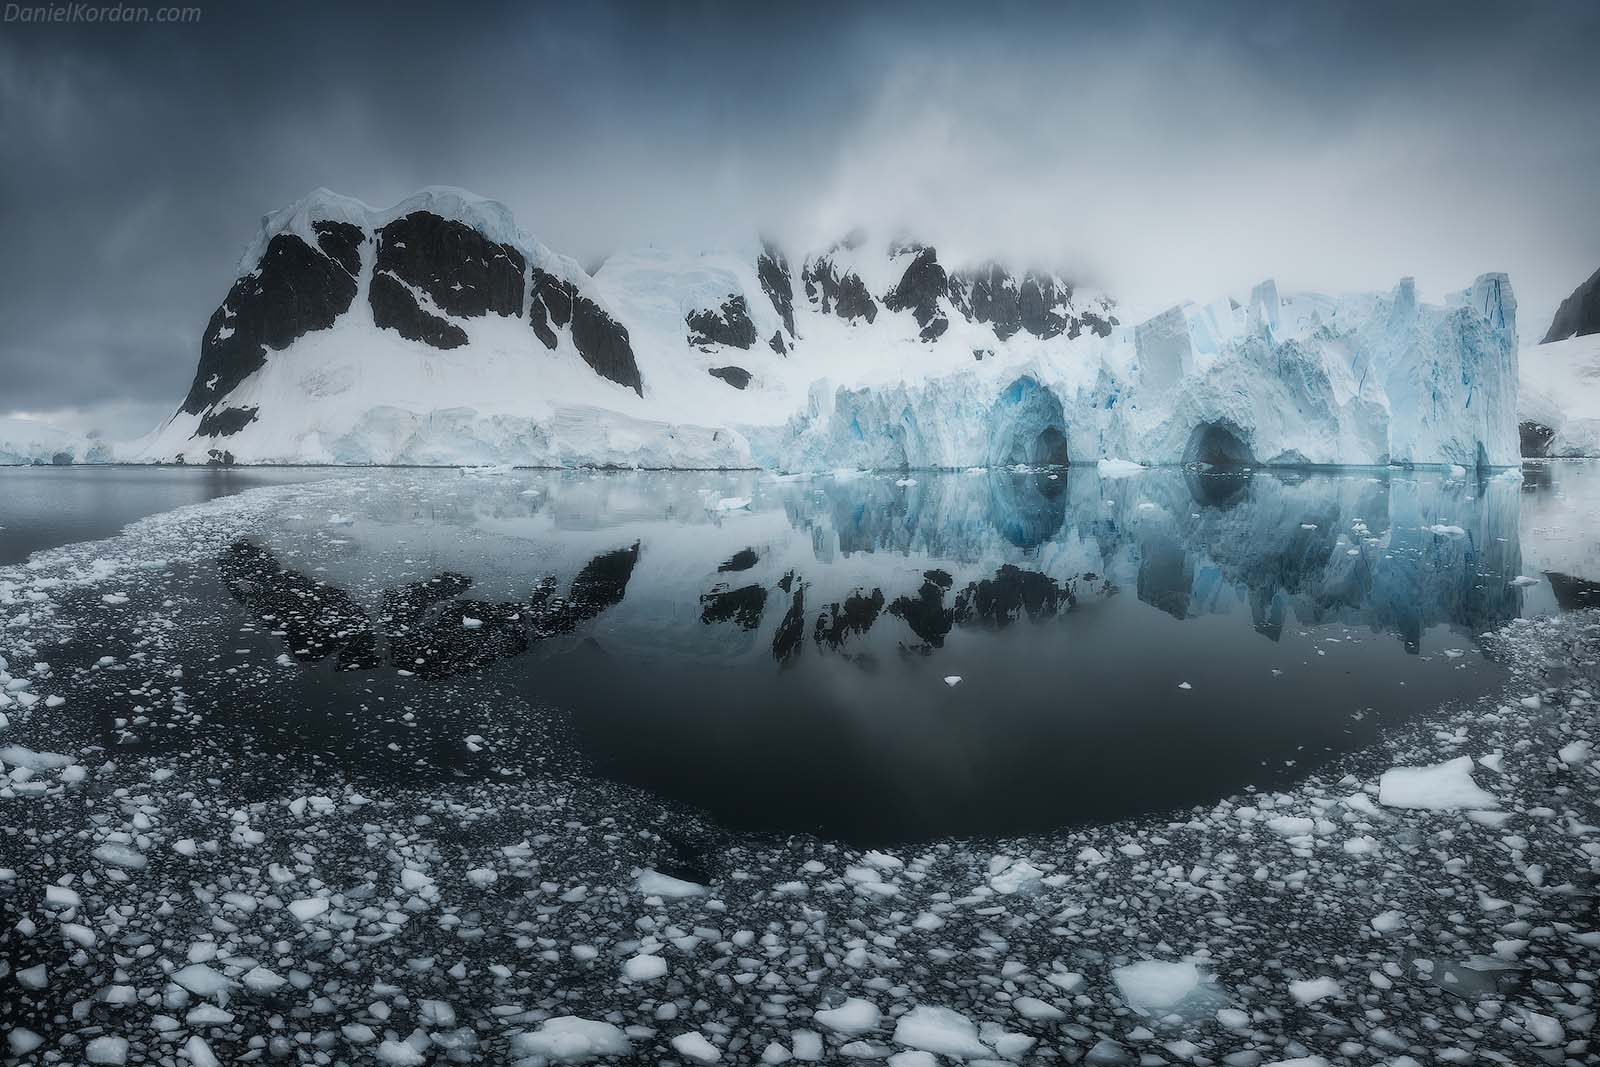 22 Day Antarctica Photography Expedition on Bark Europa - day 16